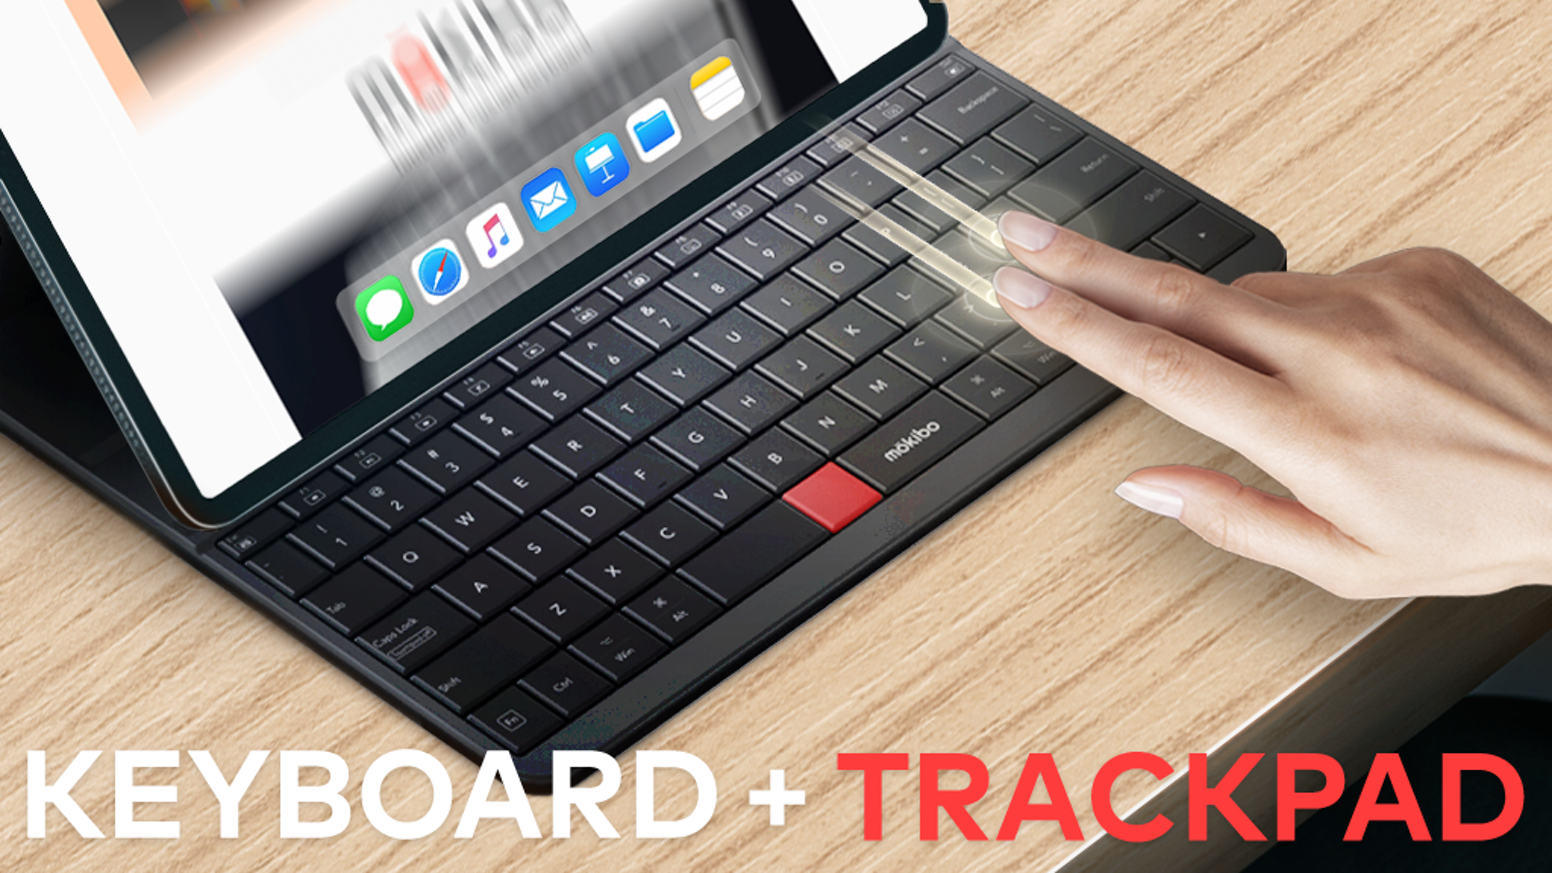 Light and thin keyboard with the keys that also function as a trackpad.